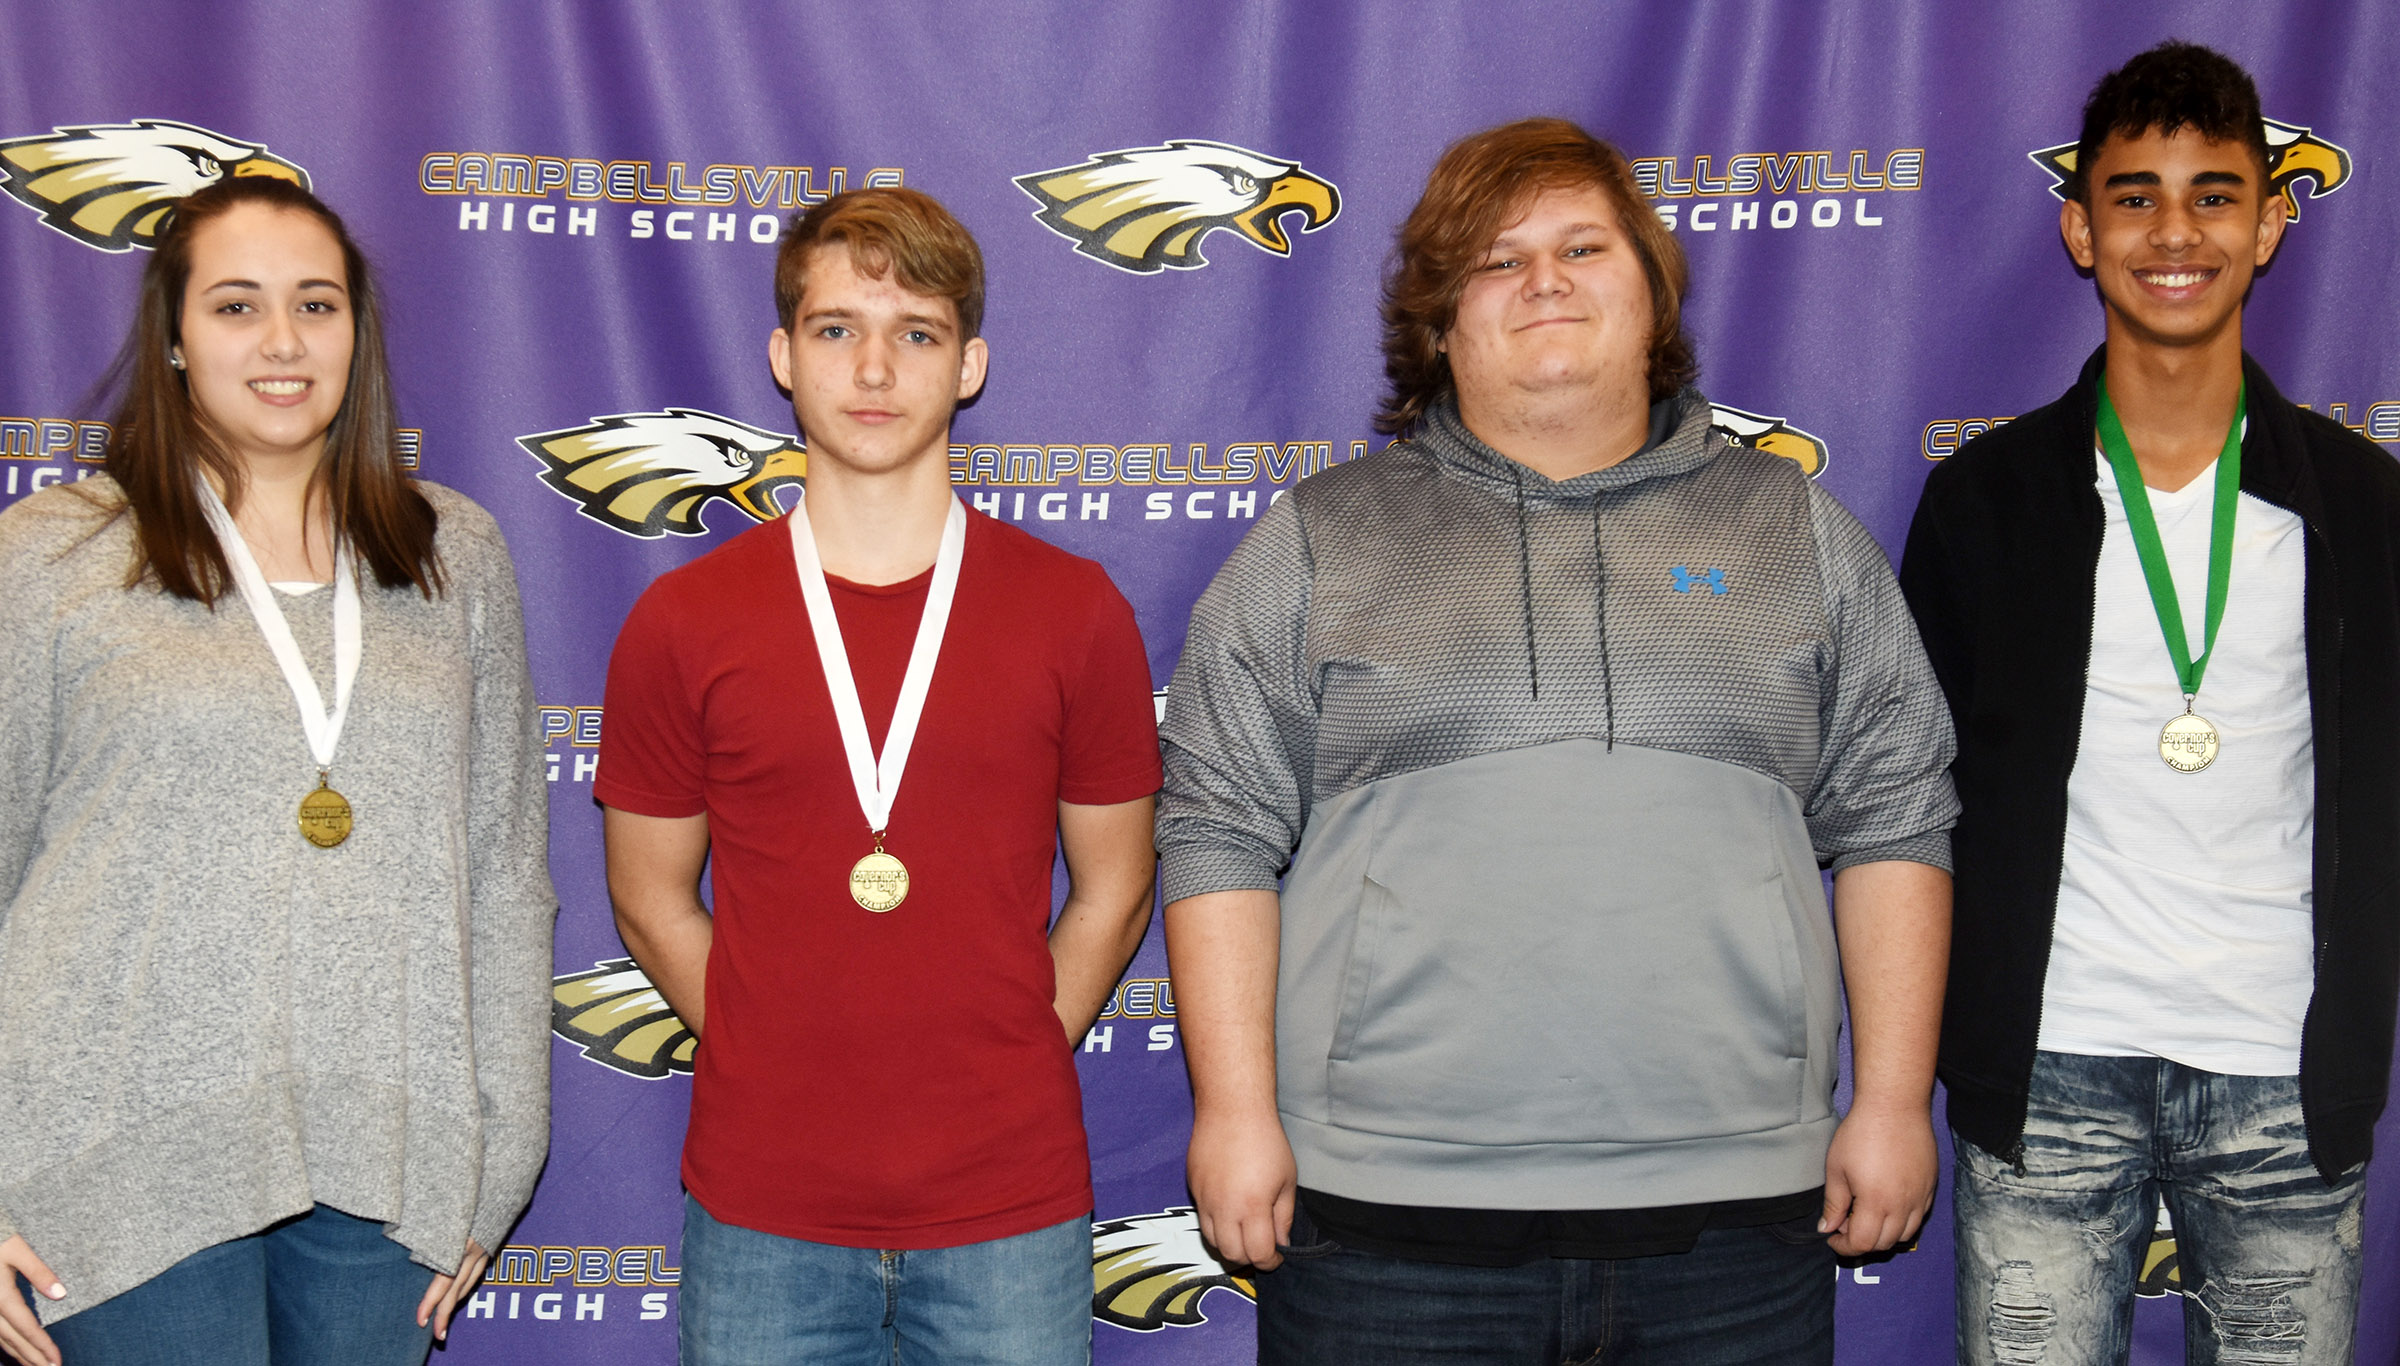 Campbellsville High School academic team members competed in District Governor's Cup competition on Saturday, Jan. 27. Based on their scores, four CHS students will advance to region competition. Advancing are, from left, CHS junior Elizabeth Sullivan in composition, sophomore Tristin Lopez in math, junior Randy Harris in arts and humanities and sophomore David Silva in science.